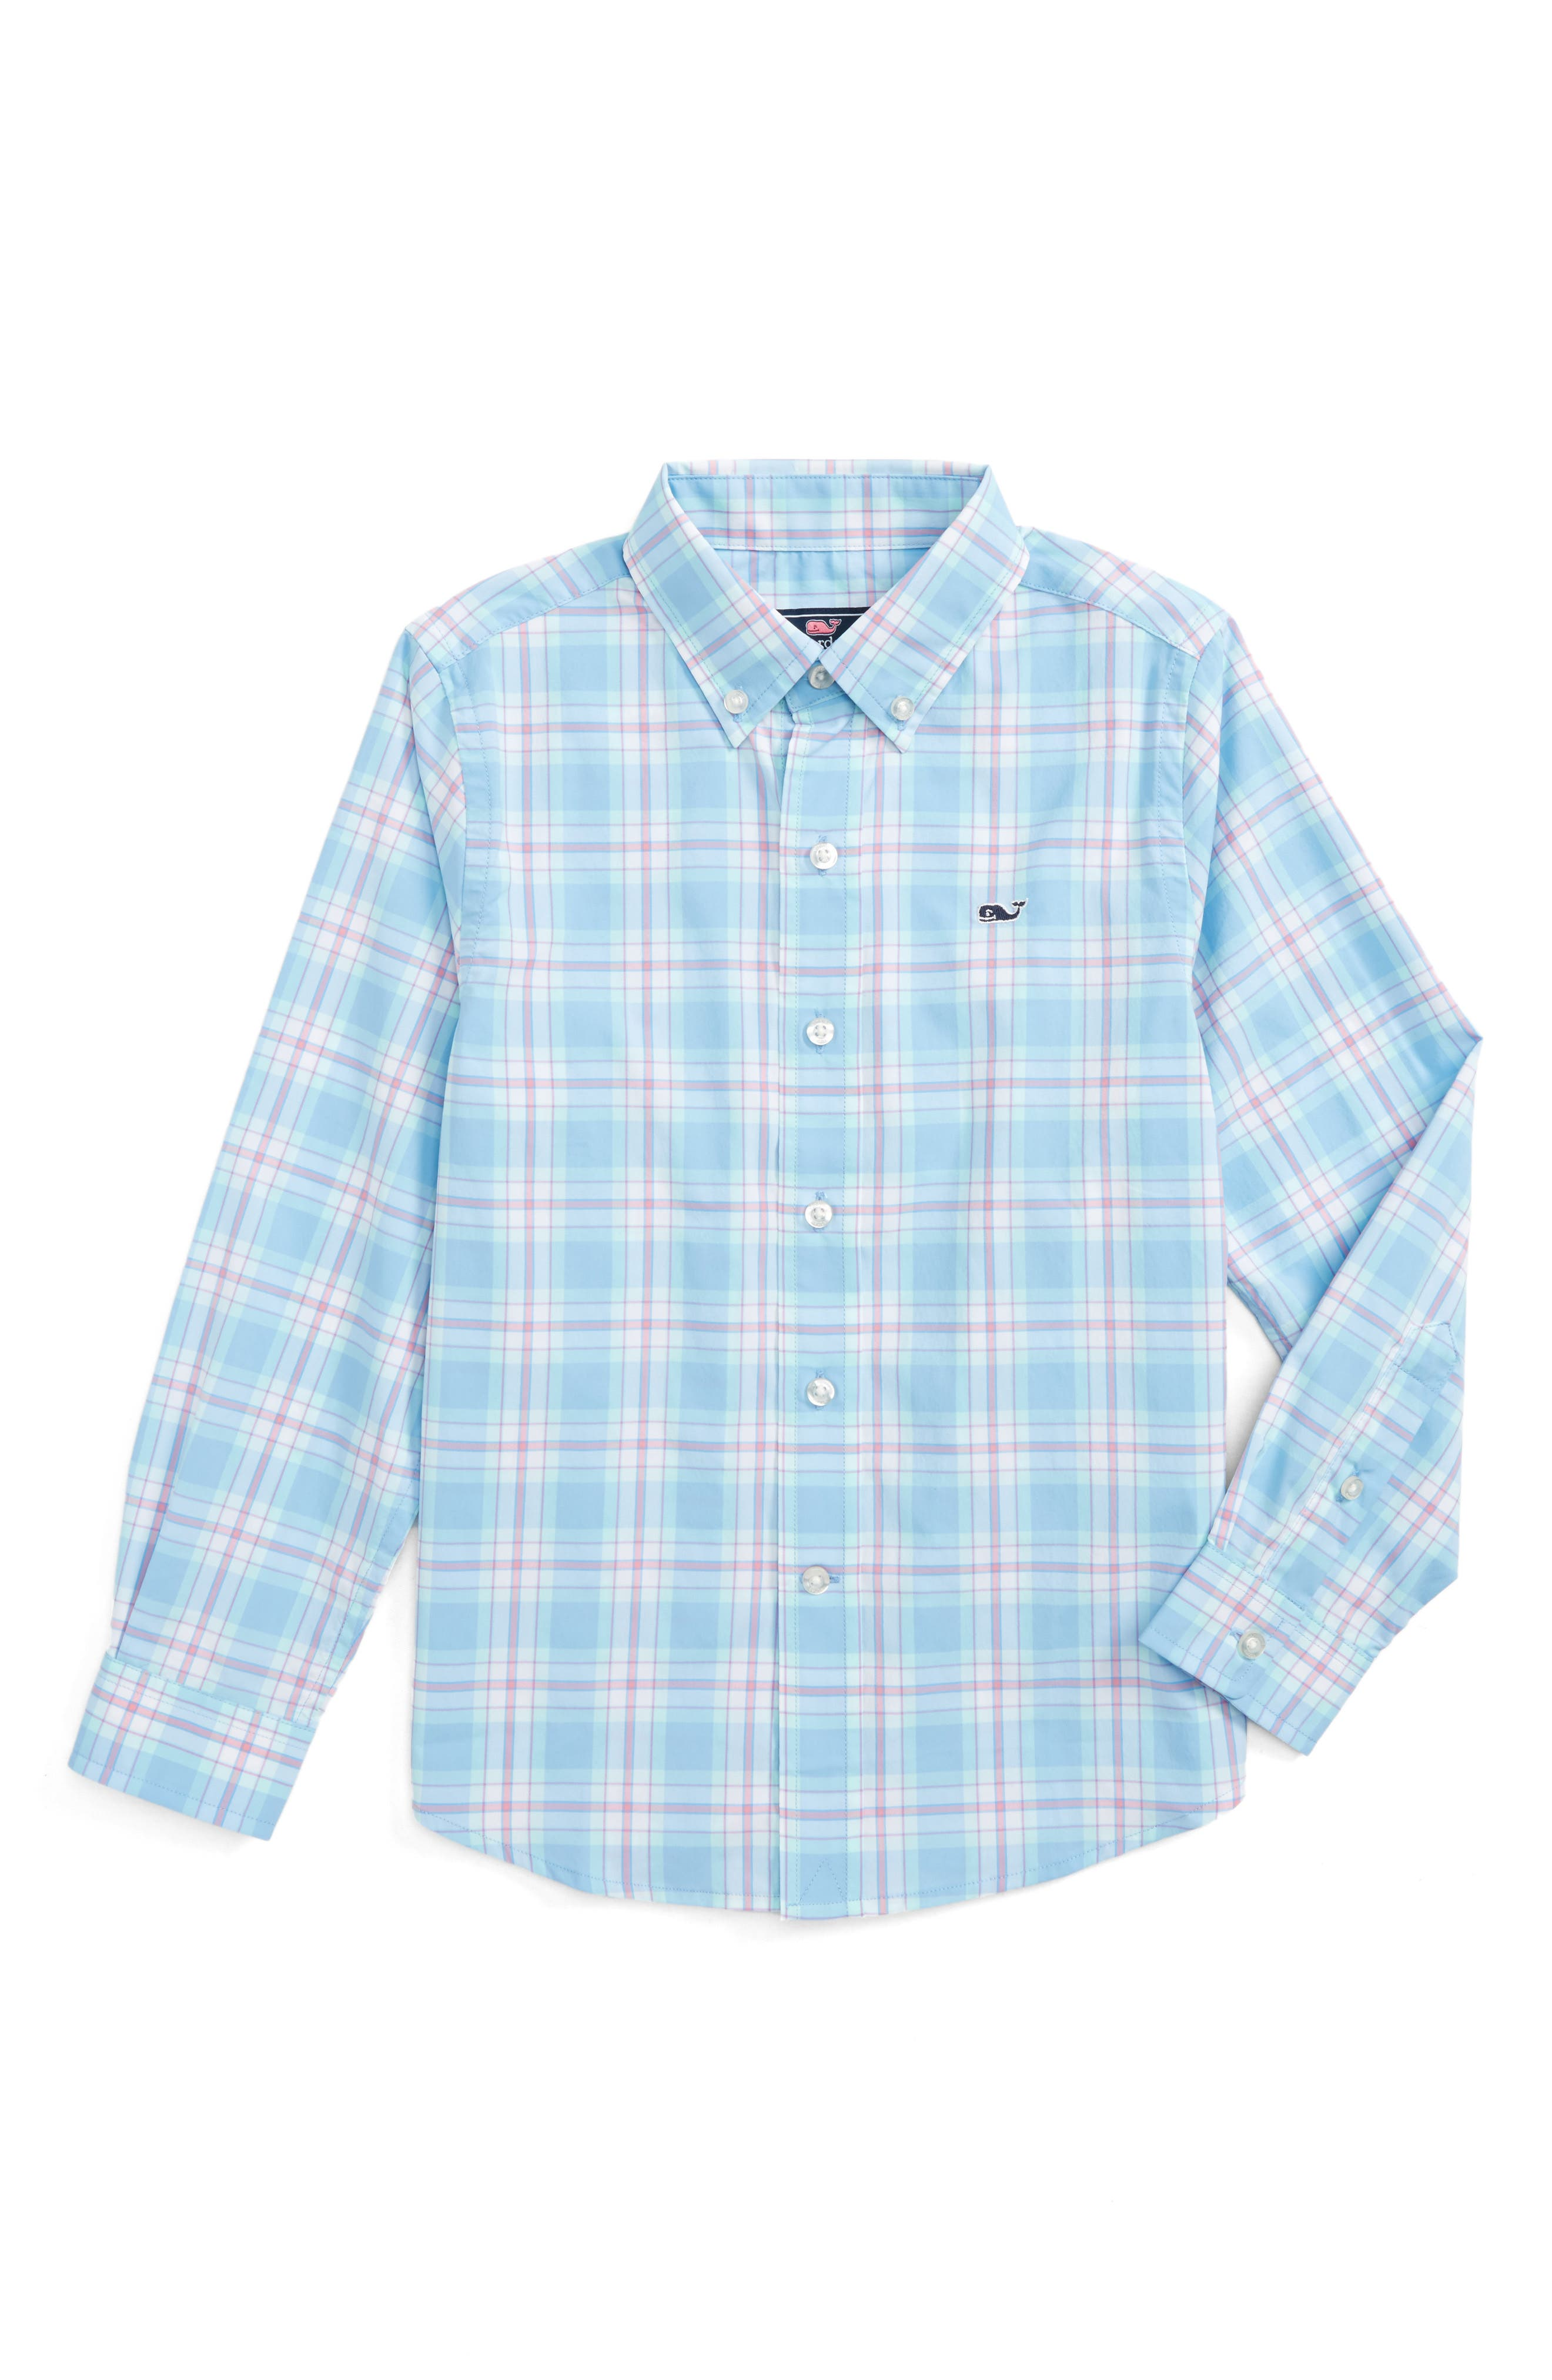 Montauk Point Performance Whale Shirt,                         Main,                         color, 484